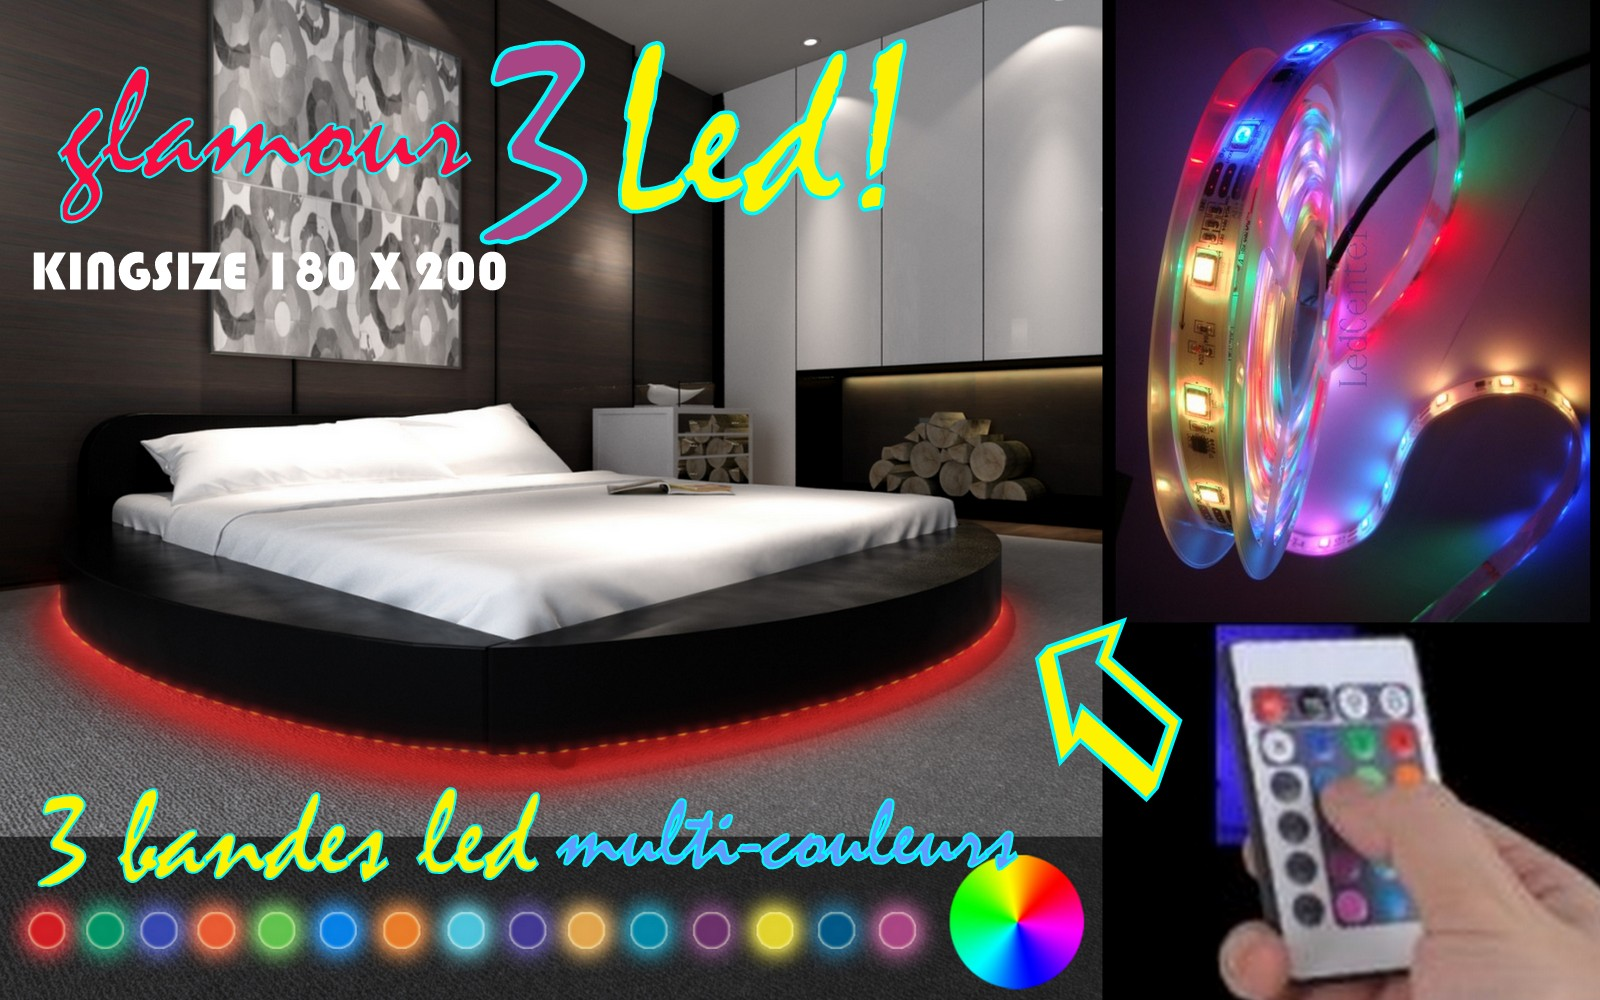 decco interieur cadre de lit glamour 3 rond a led 180 x 200 noir. Black Bedroom Furniture Sets. Home Design Ideas